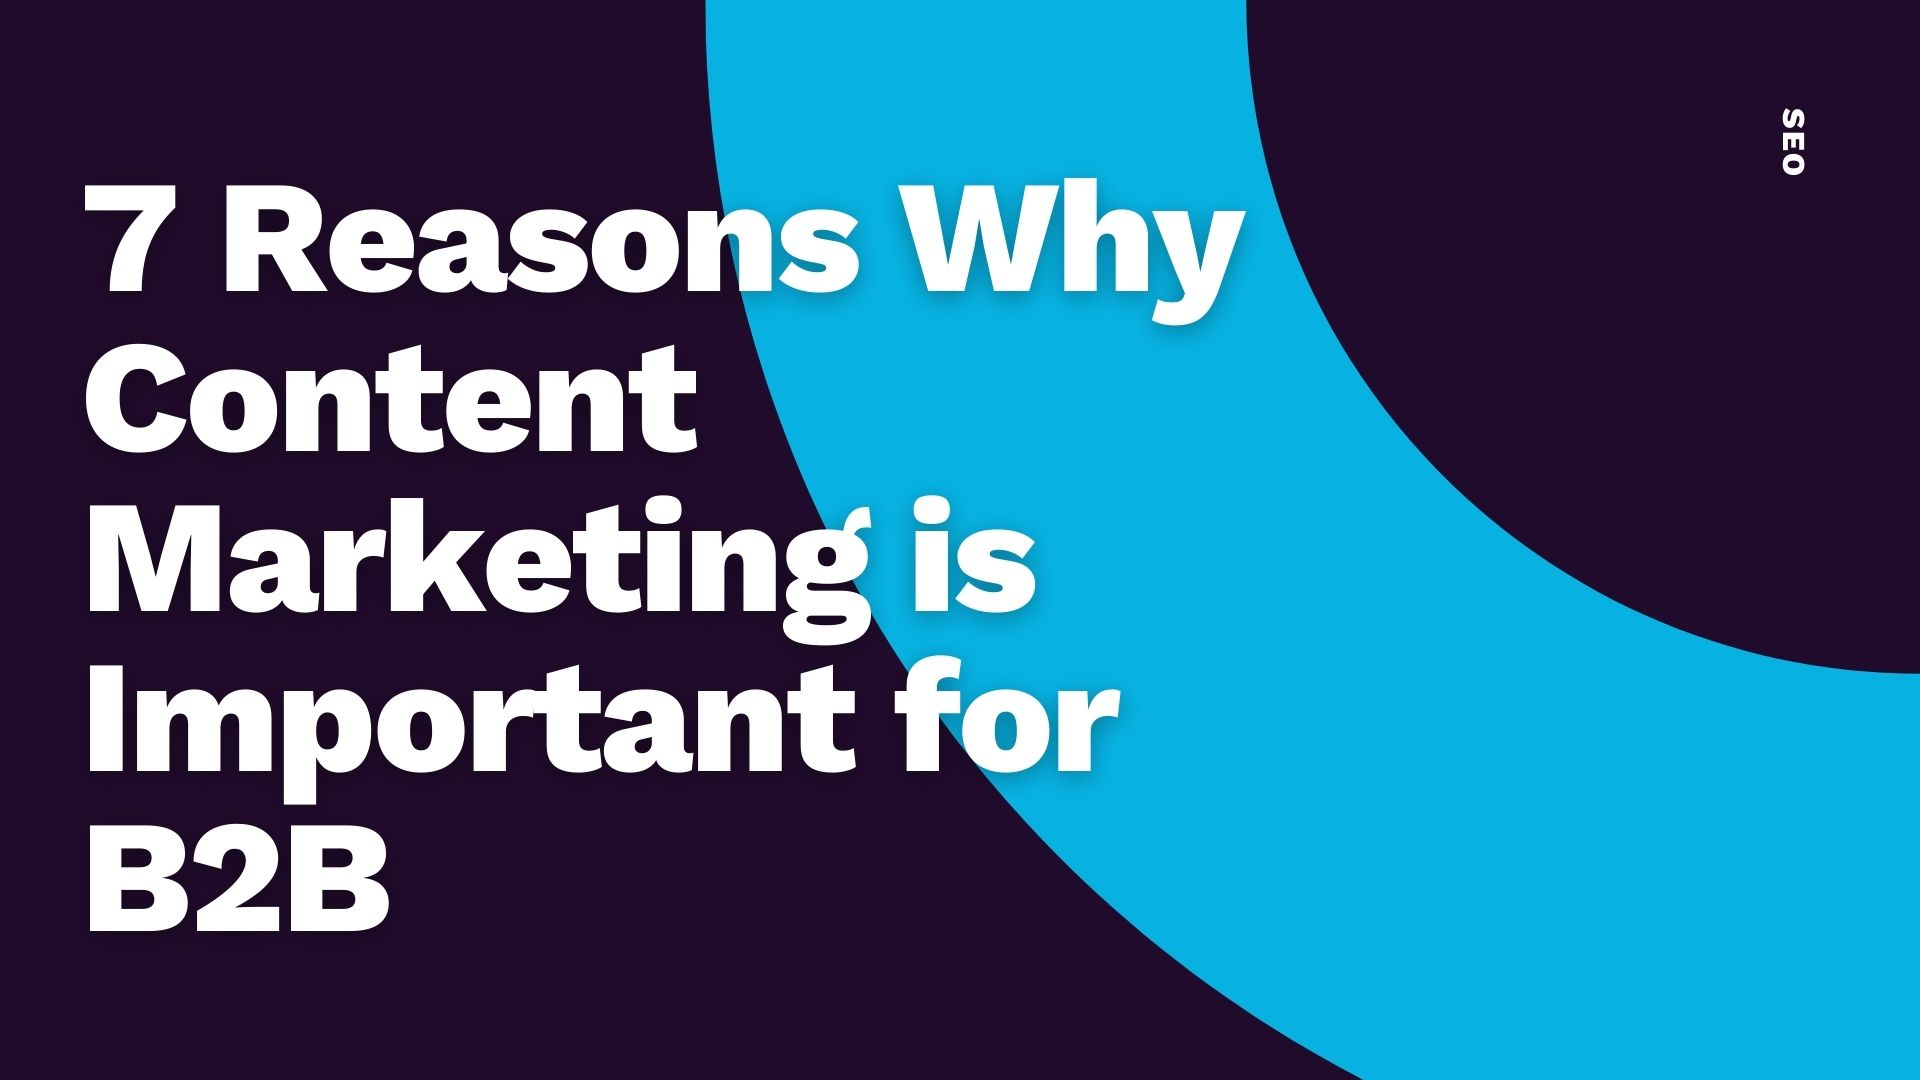 Common Ground - 7 reasons why content marketing is important for b2b